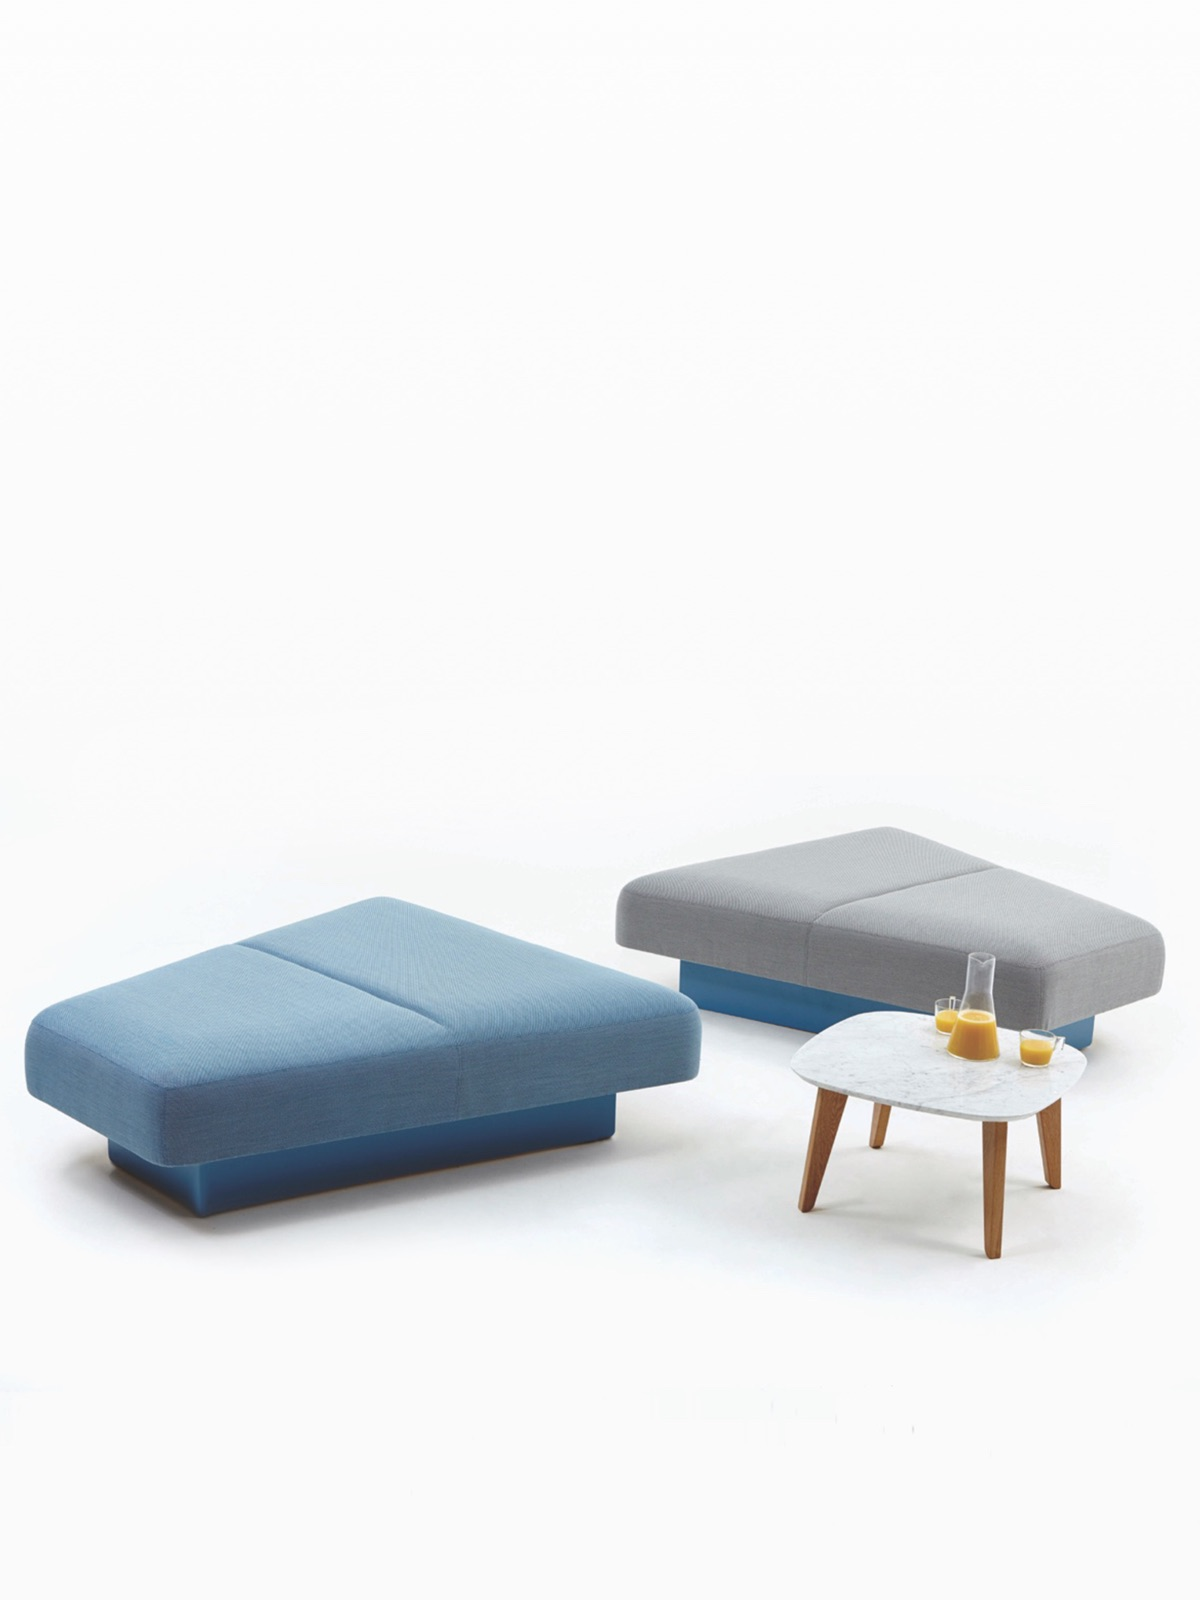 Rhyme Modular Seating